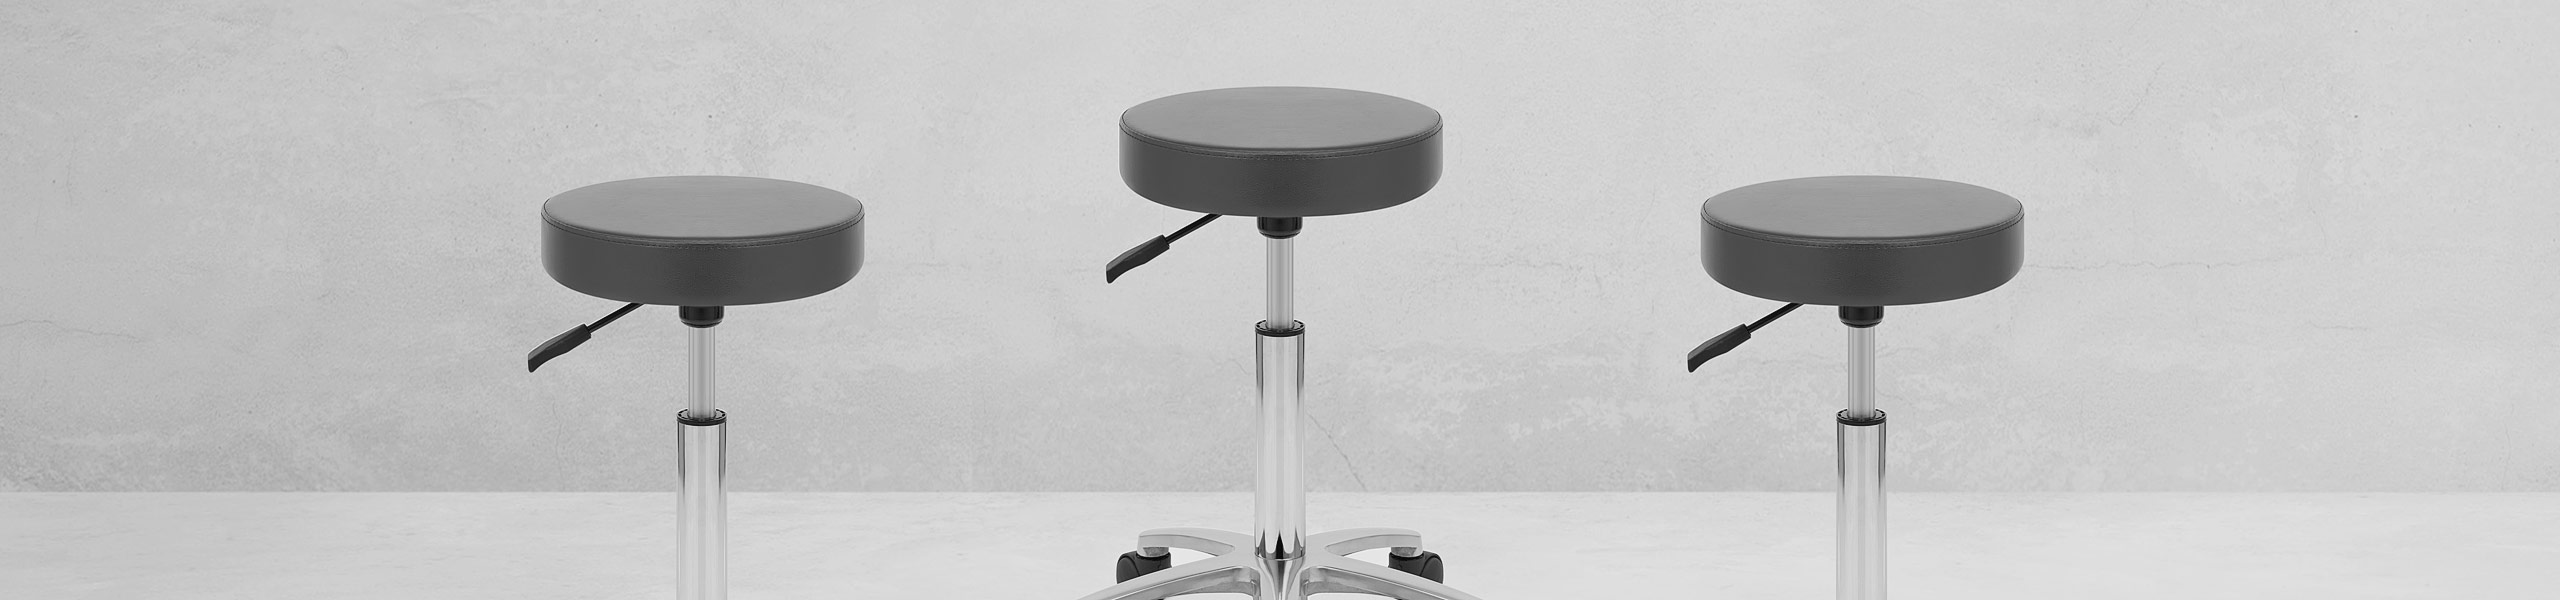 Swivel Stool With Wheels Grey Video Banner